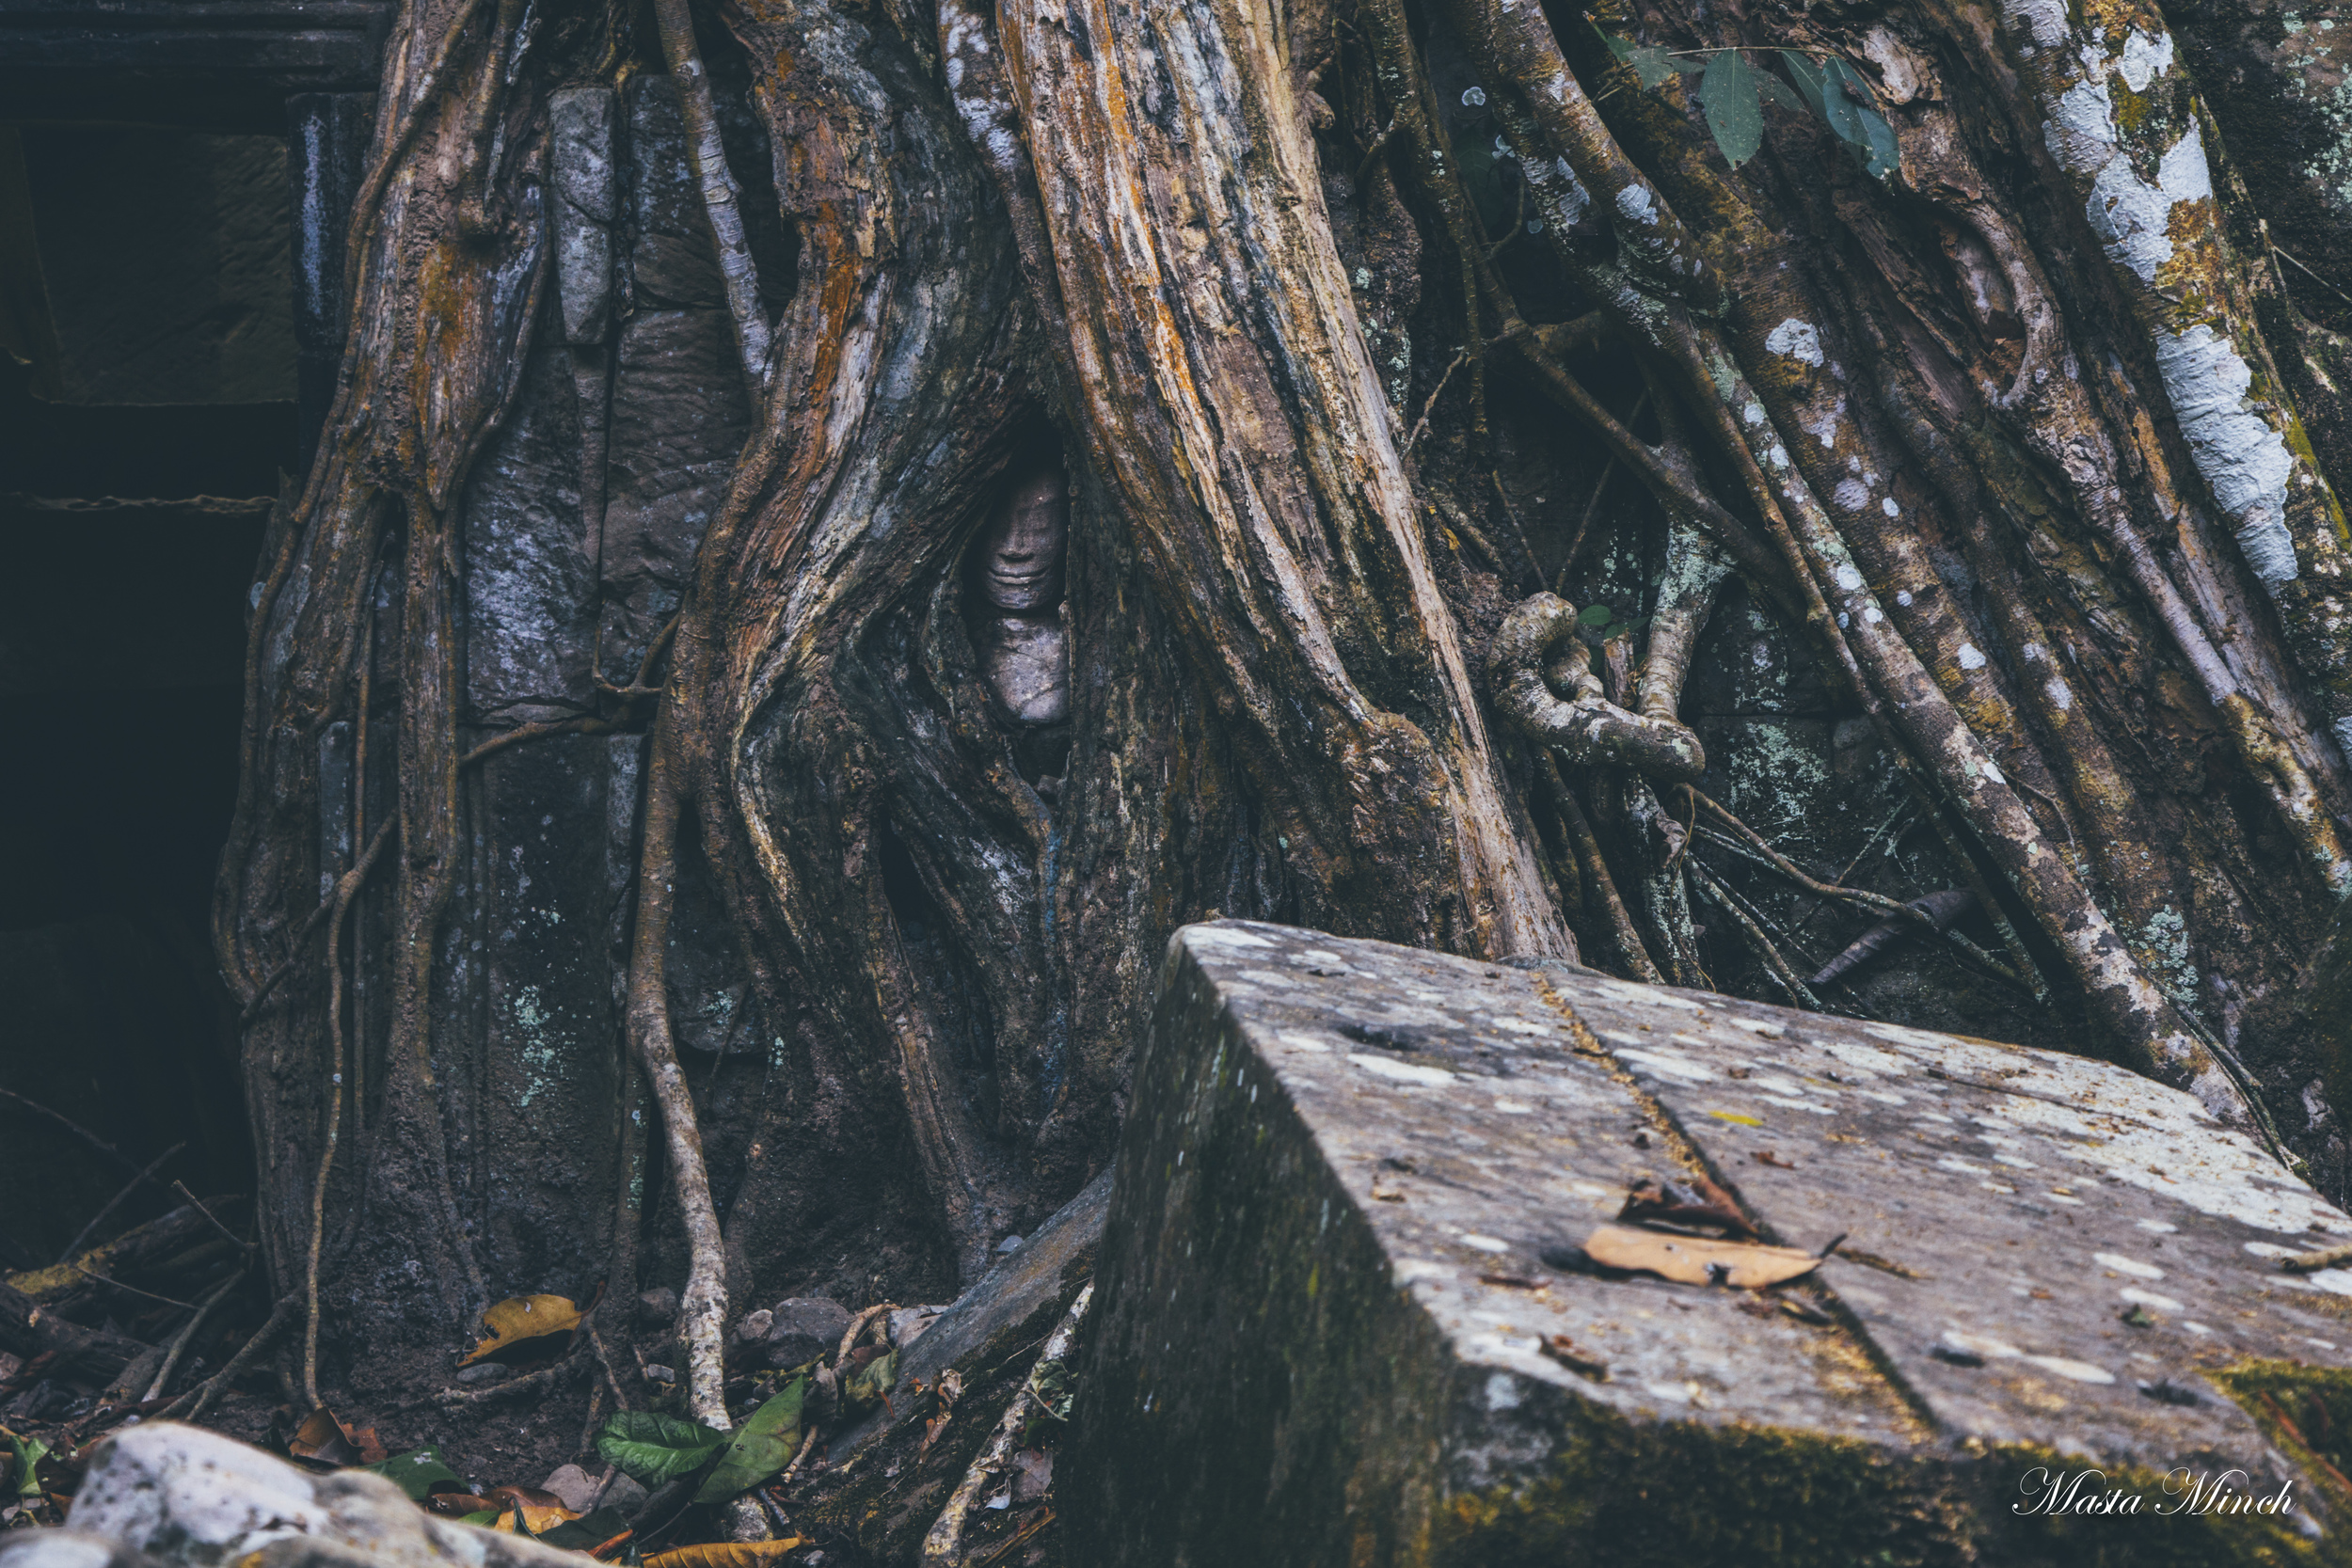 Small head of Buddha peaking through the overgrowth.